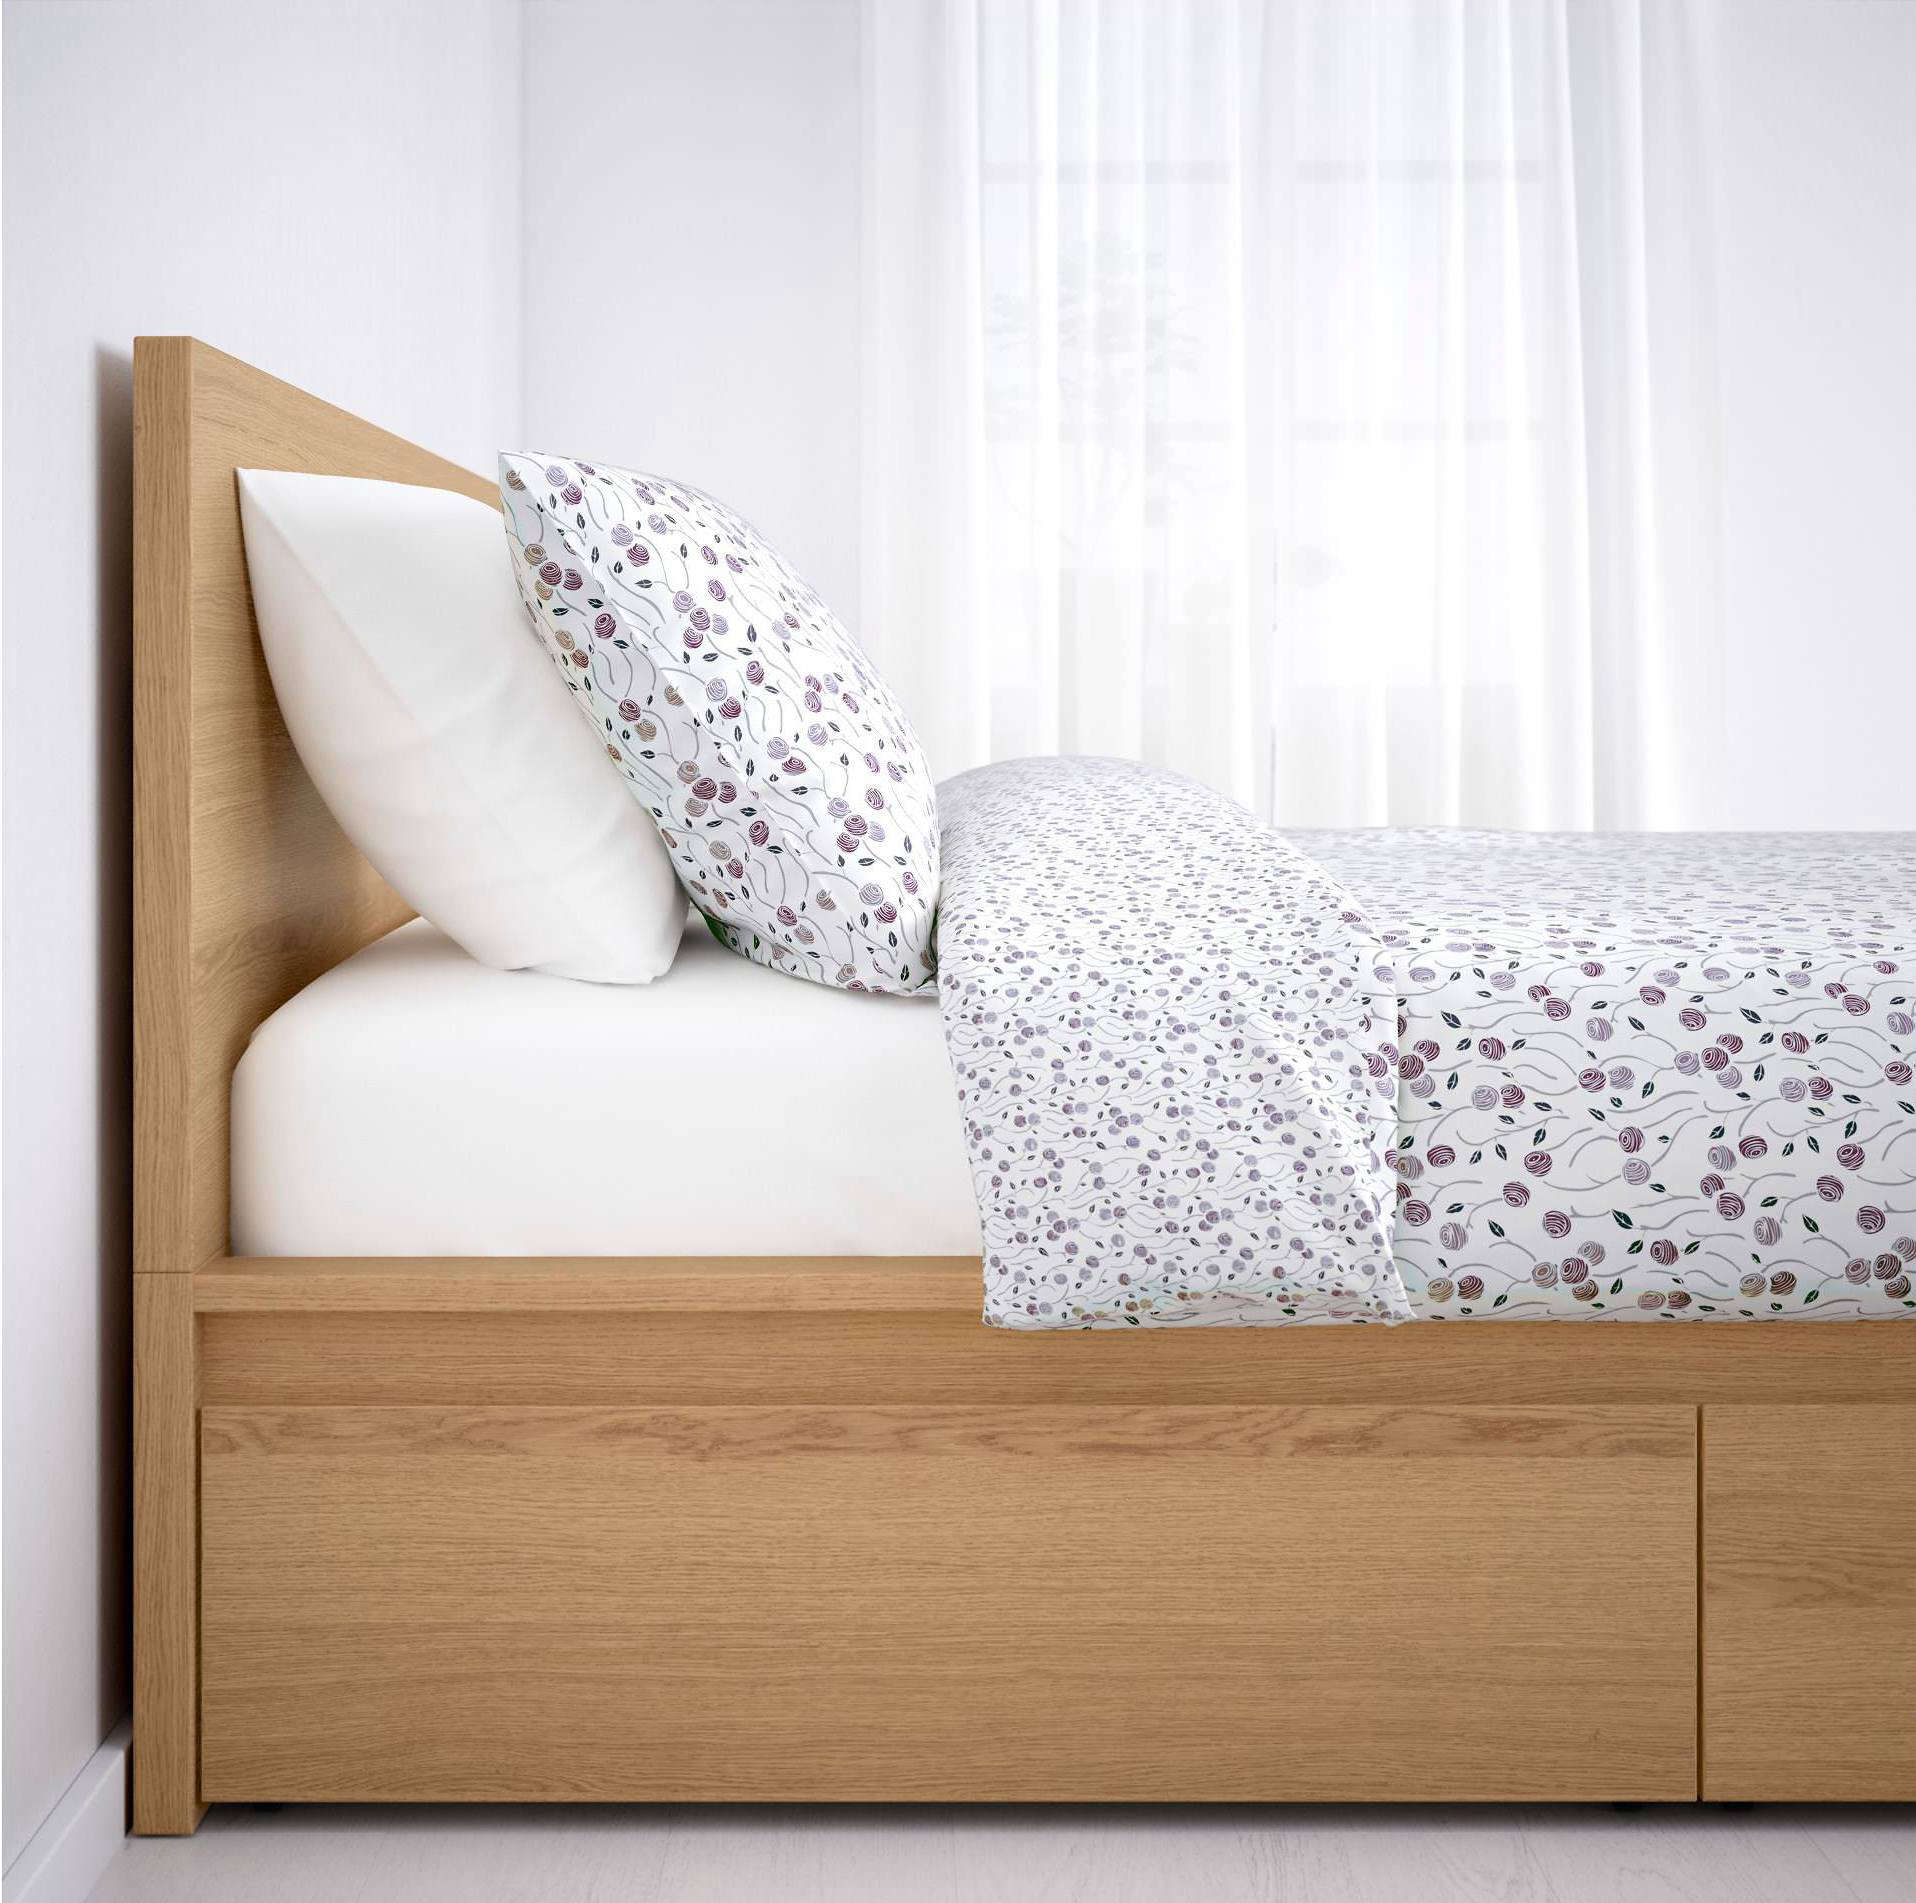 10 Easy Pieces Storage Beds The